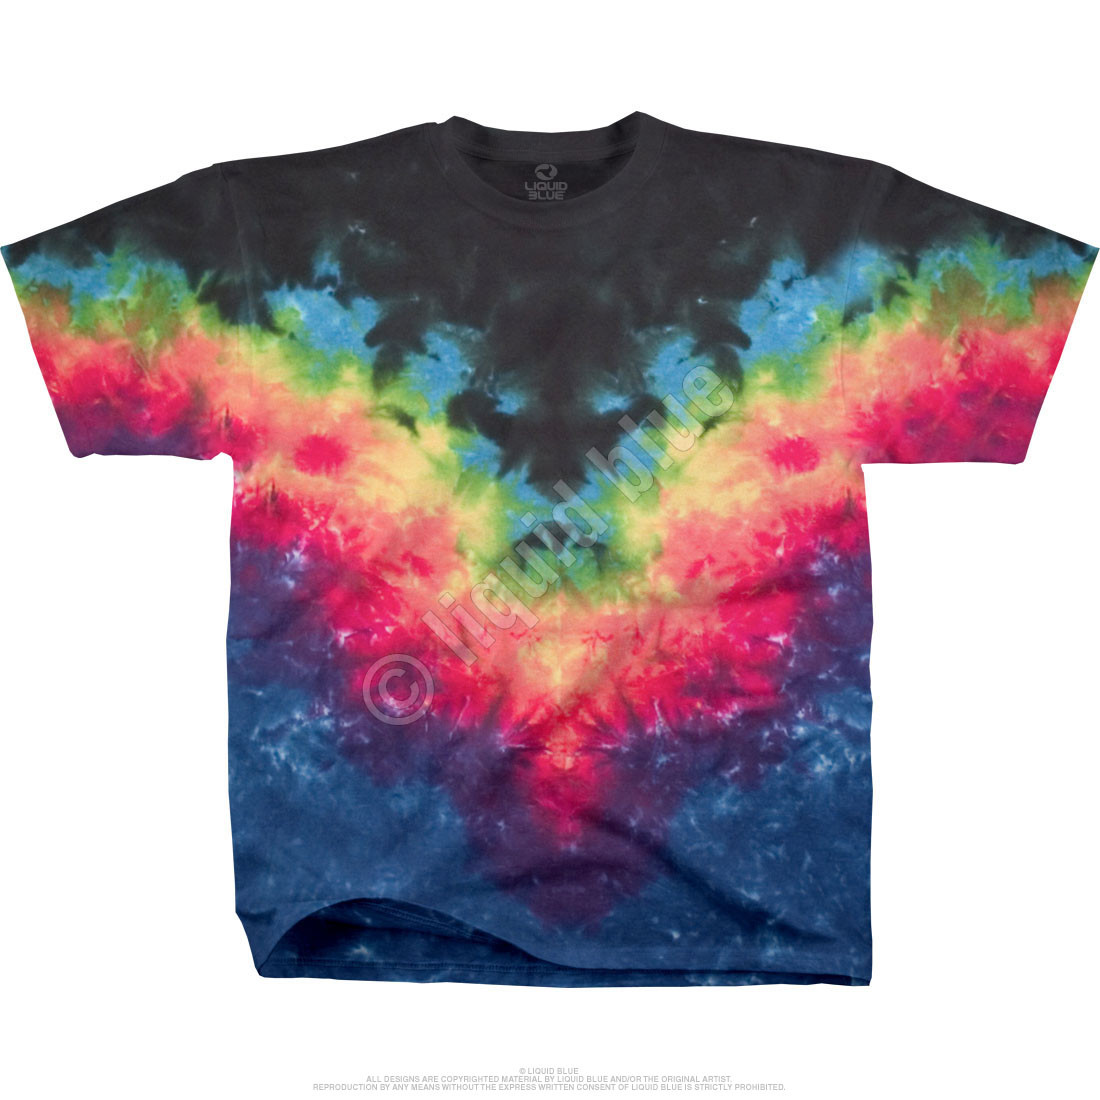 Symmetrical Rainbow Unprinted Tie-Dye T-Shirt